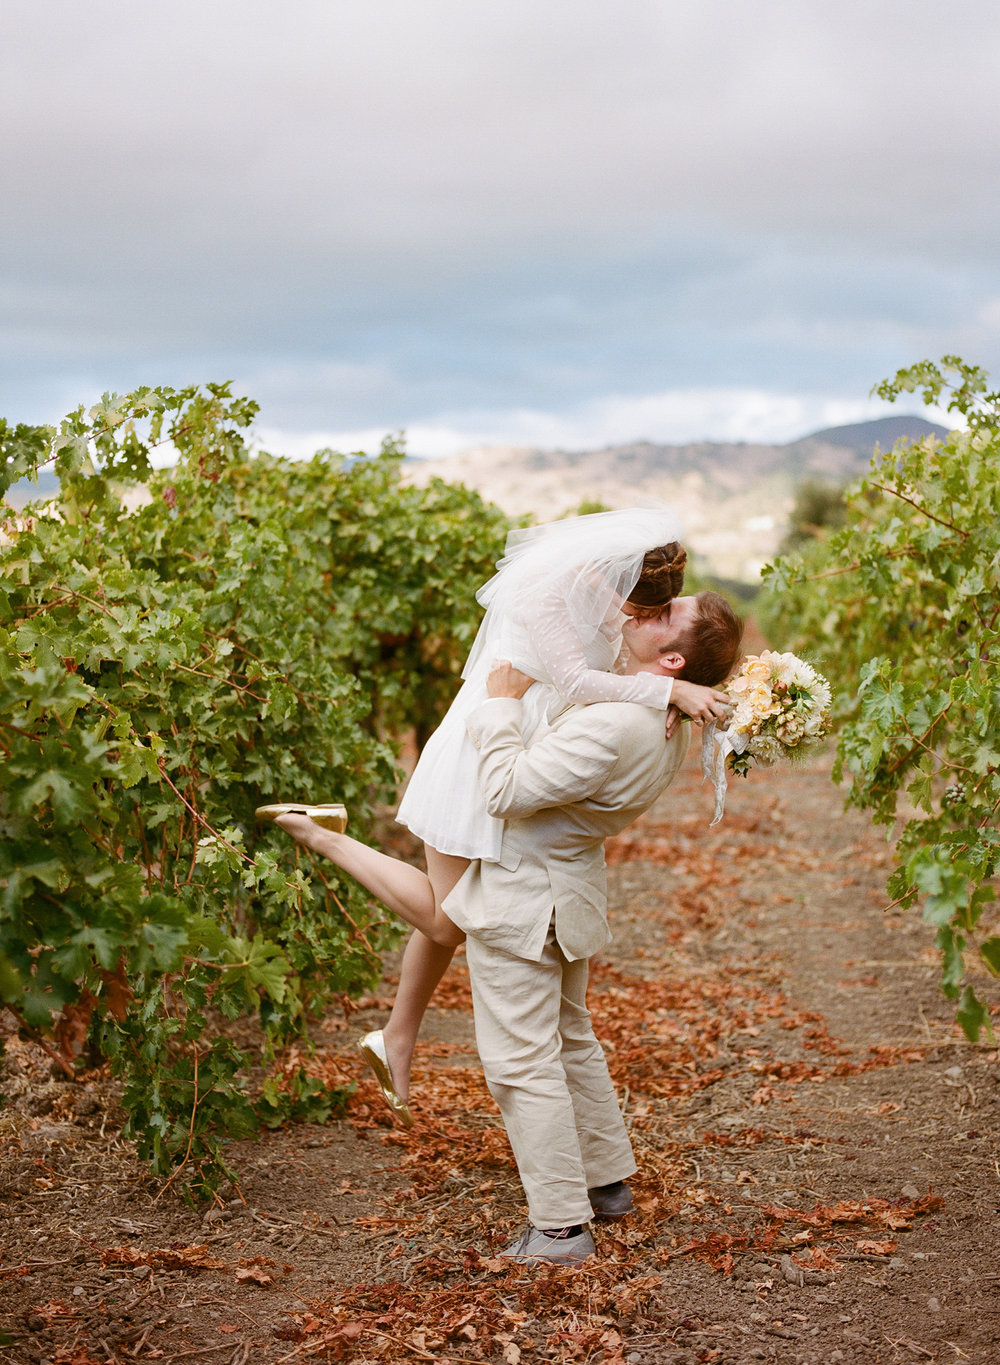 33-22-bride-groom-vineyards.jpg